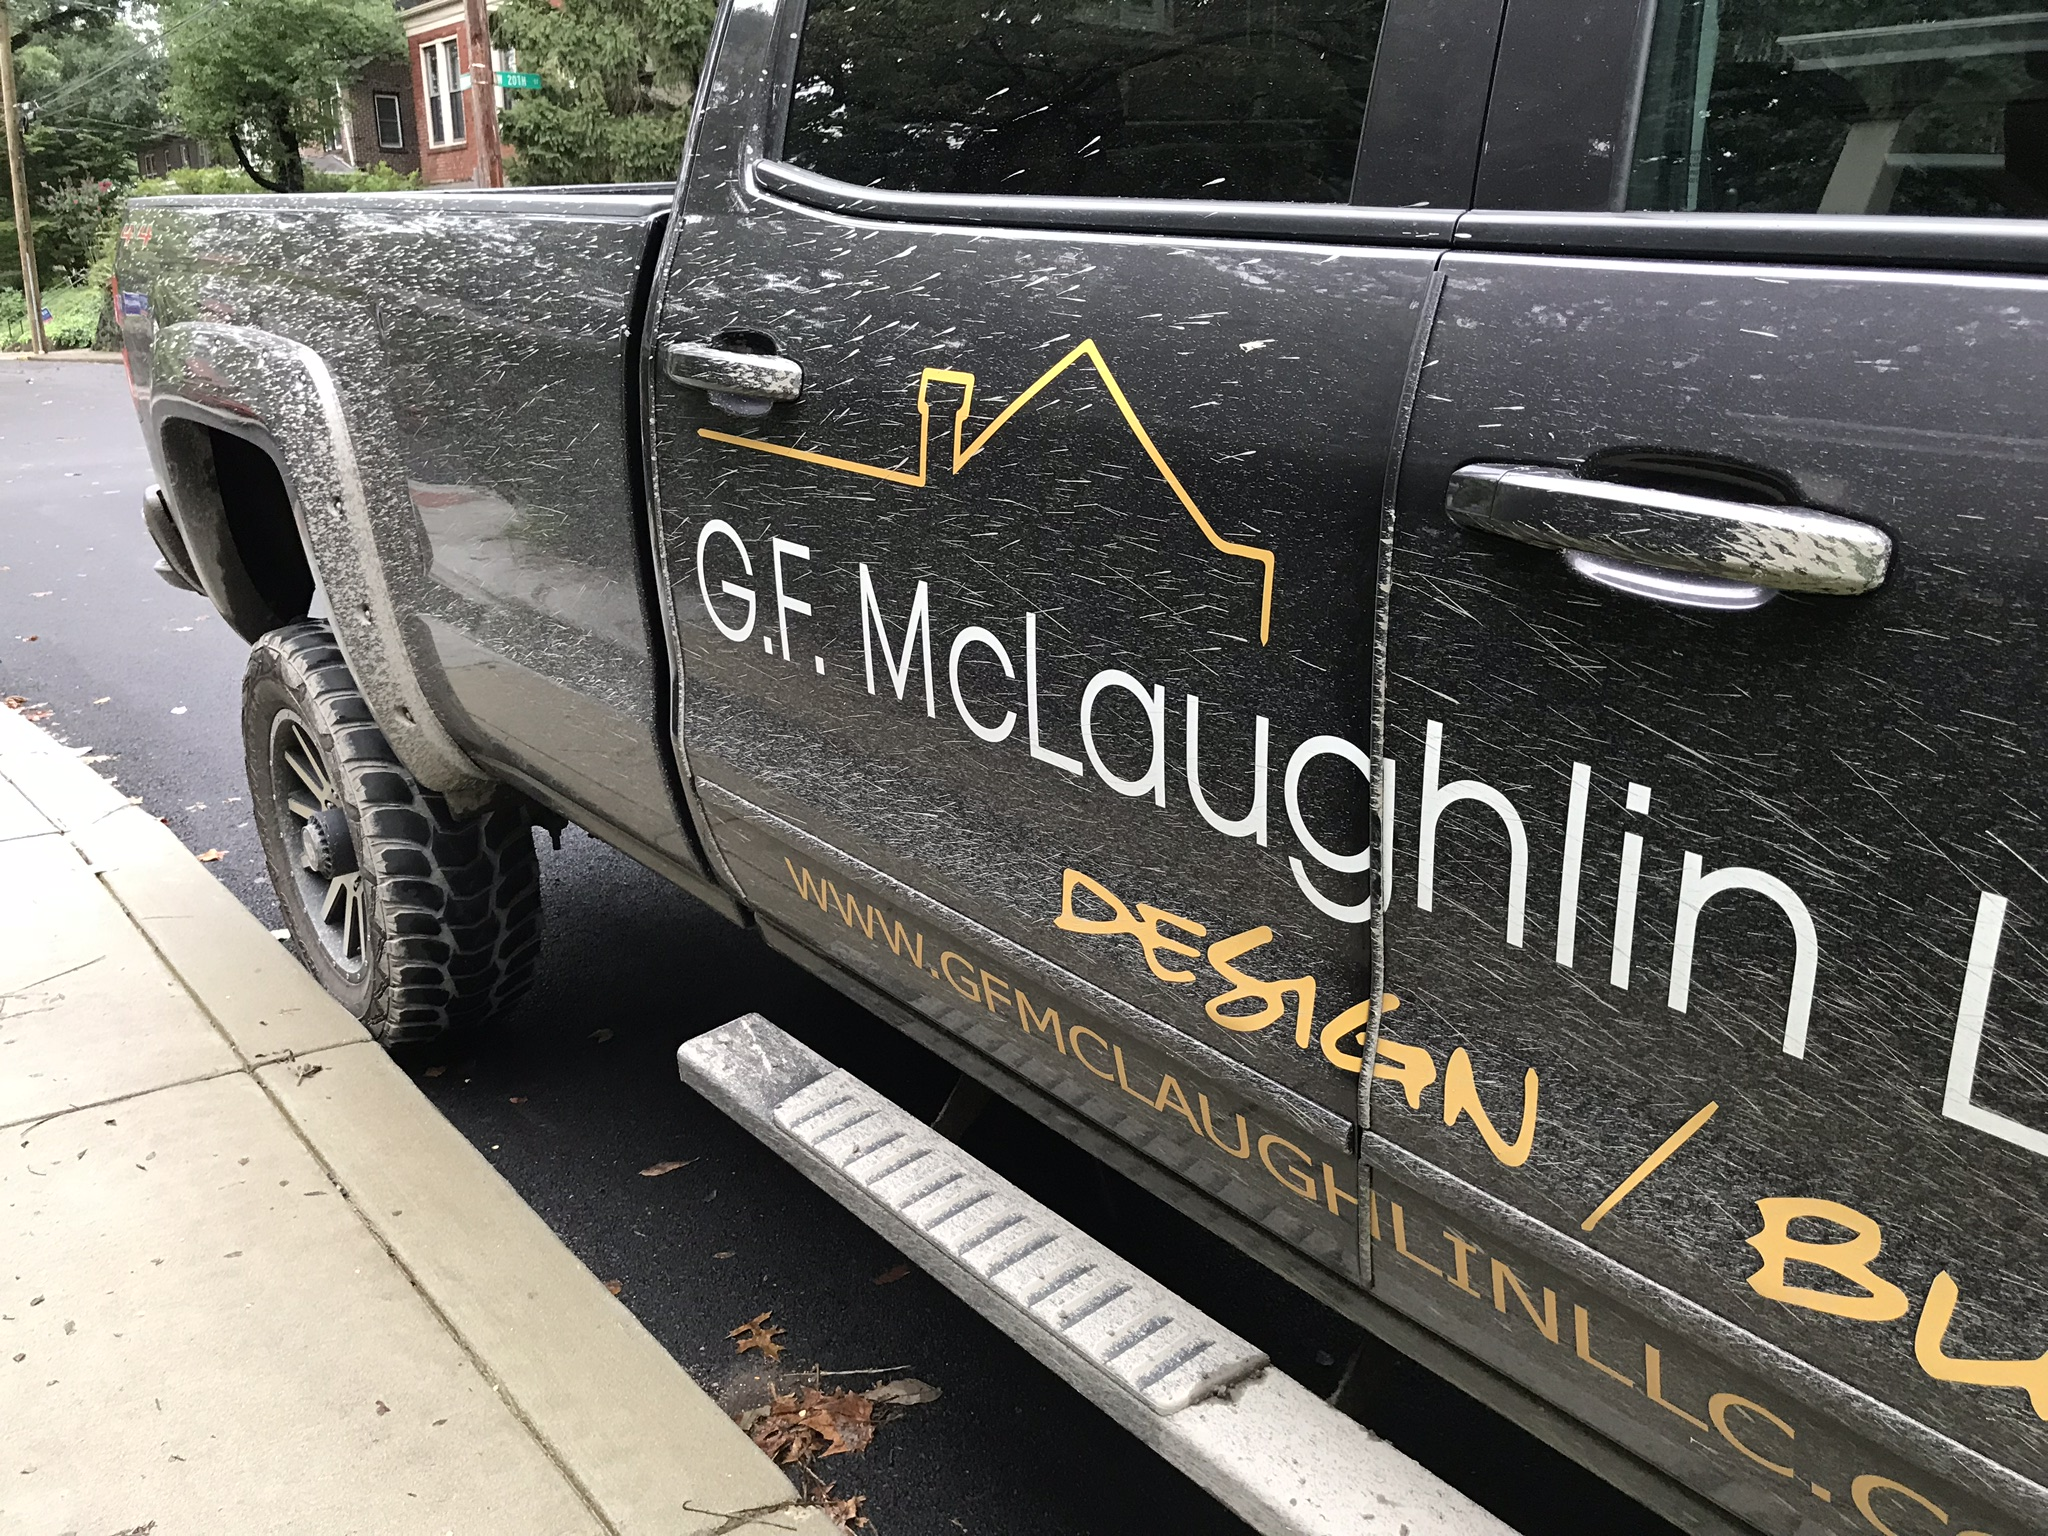 McLaughlin Truck - G.F. McLaughlin